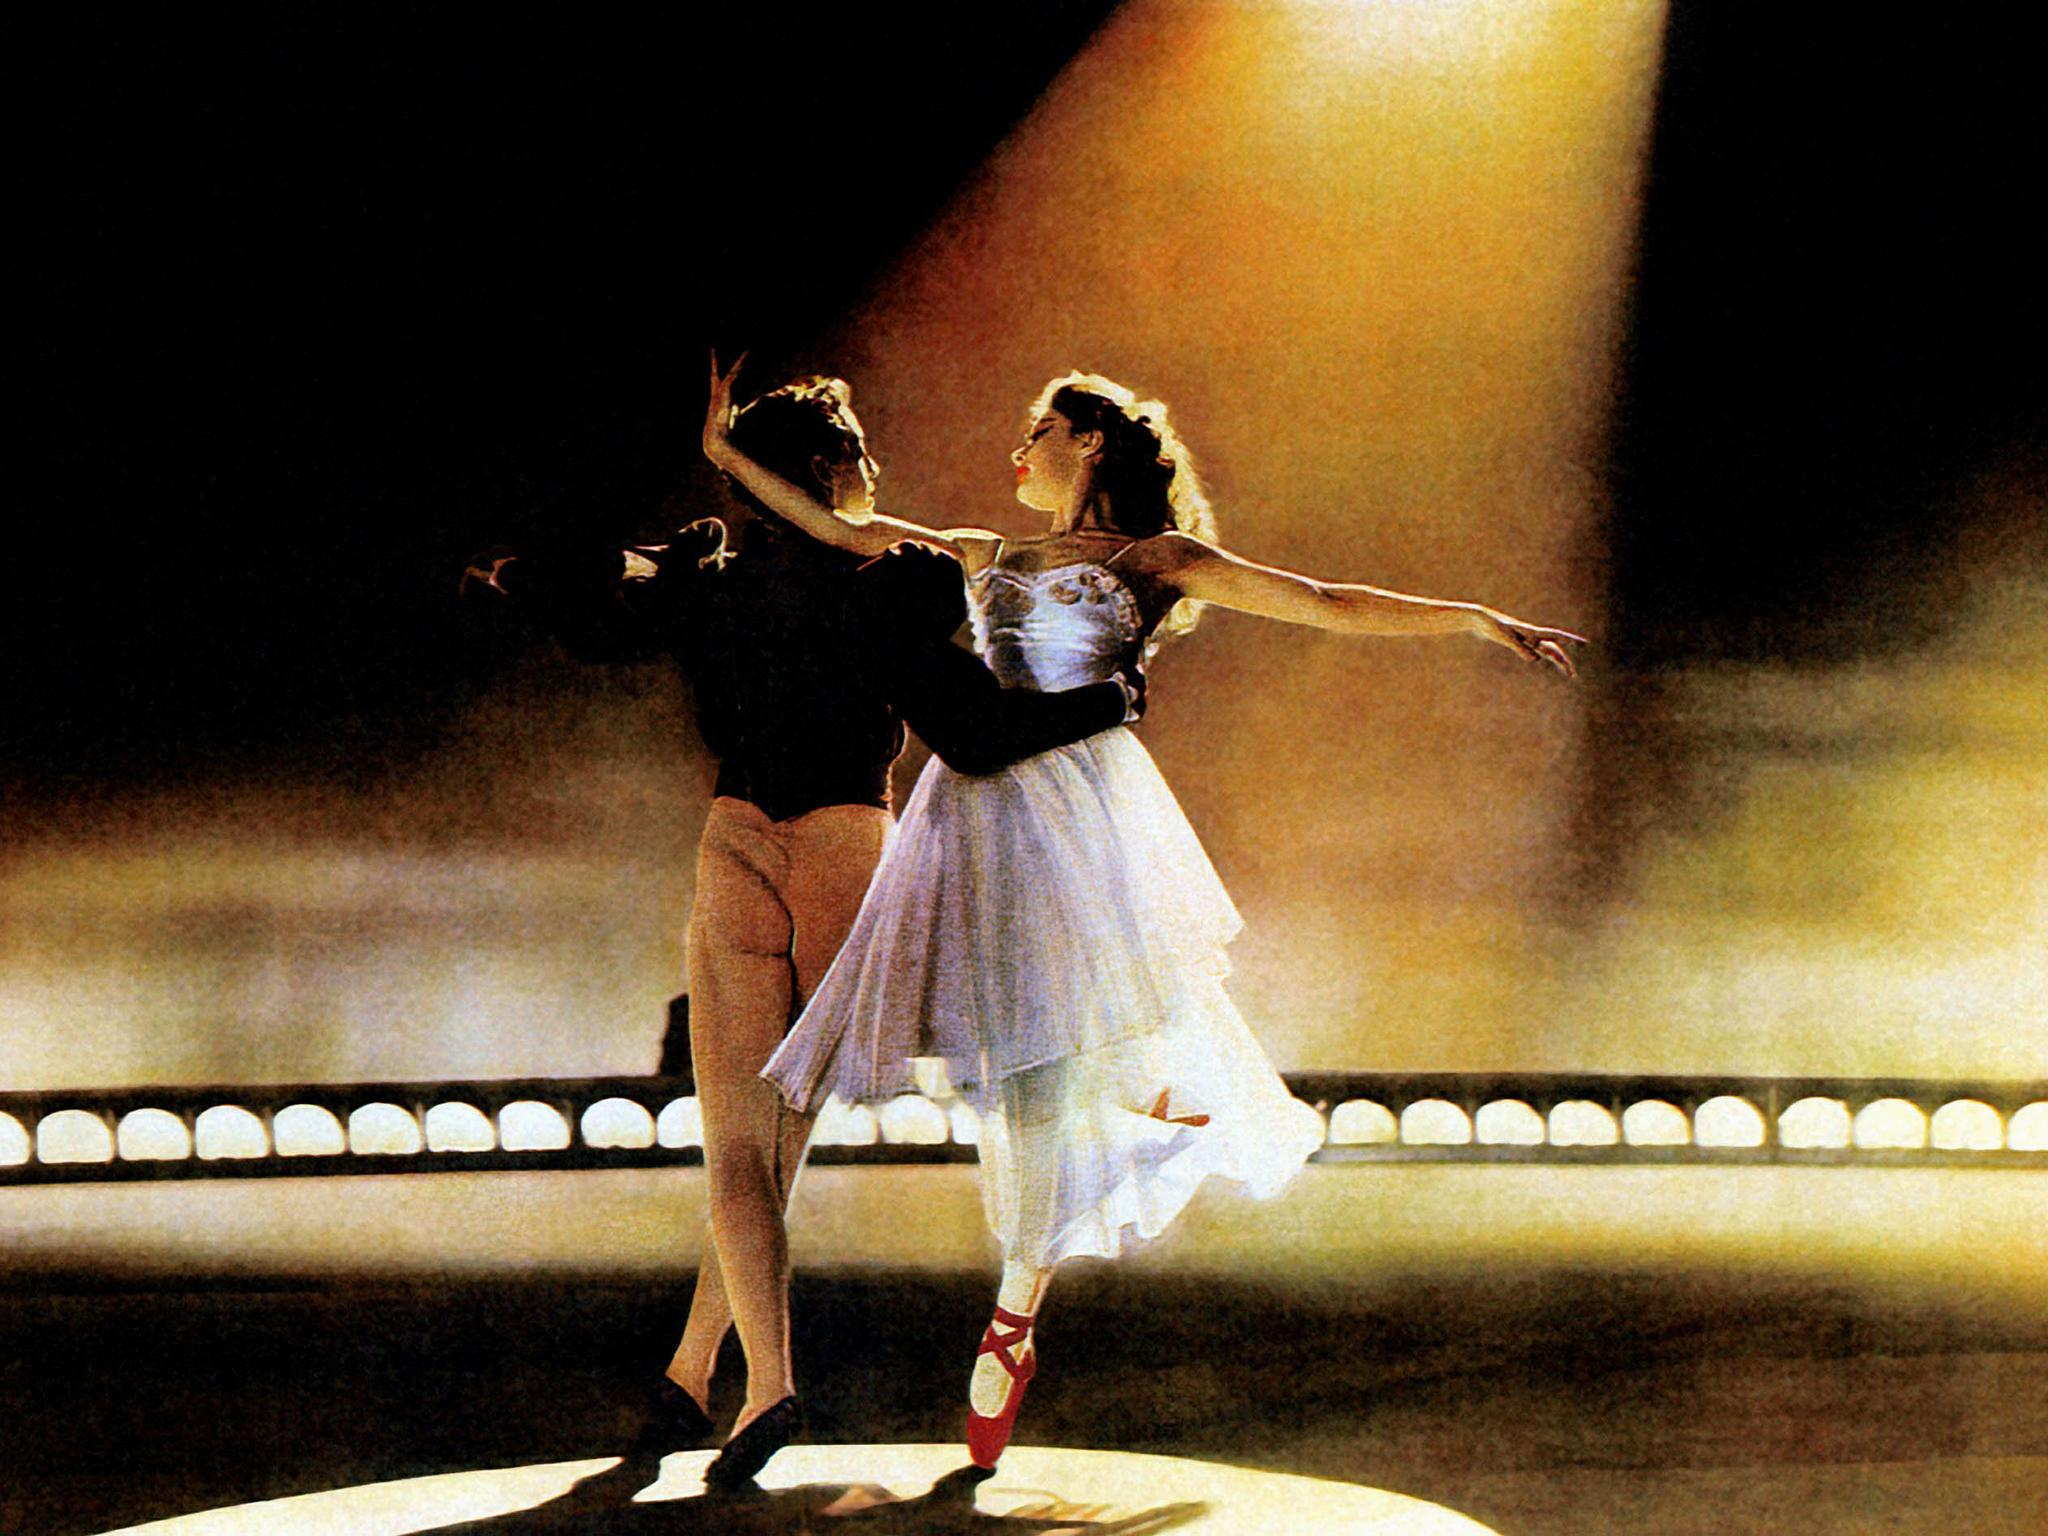 5. The Red Shoes